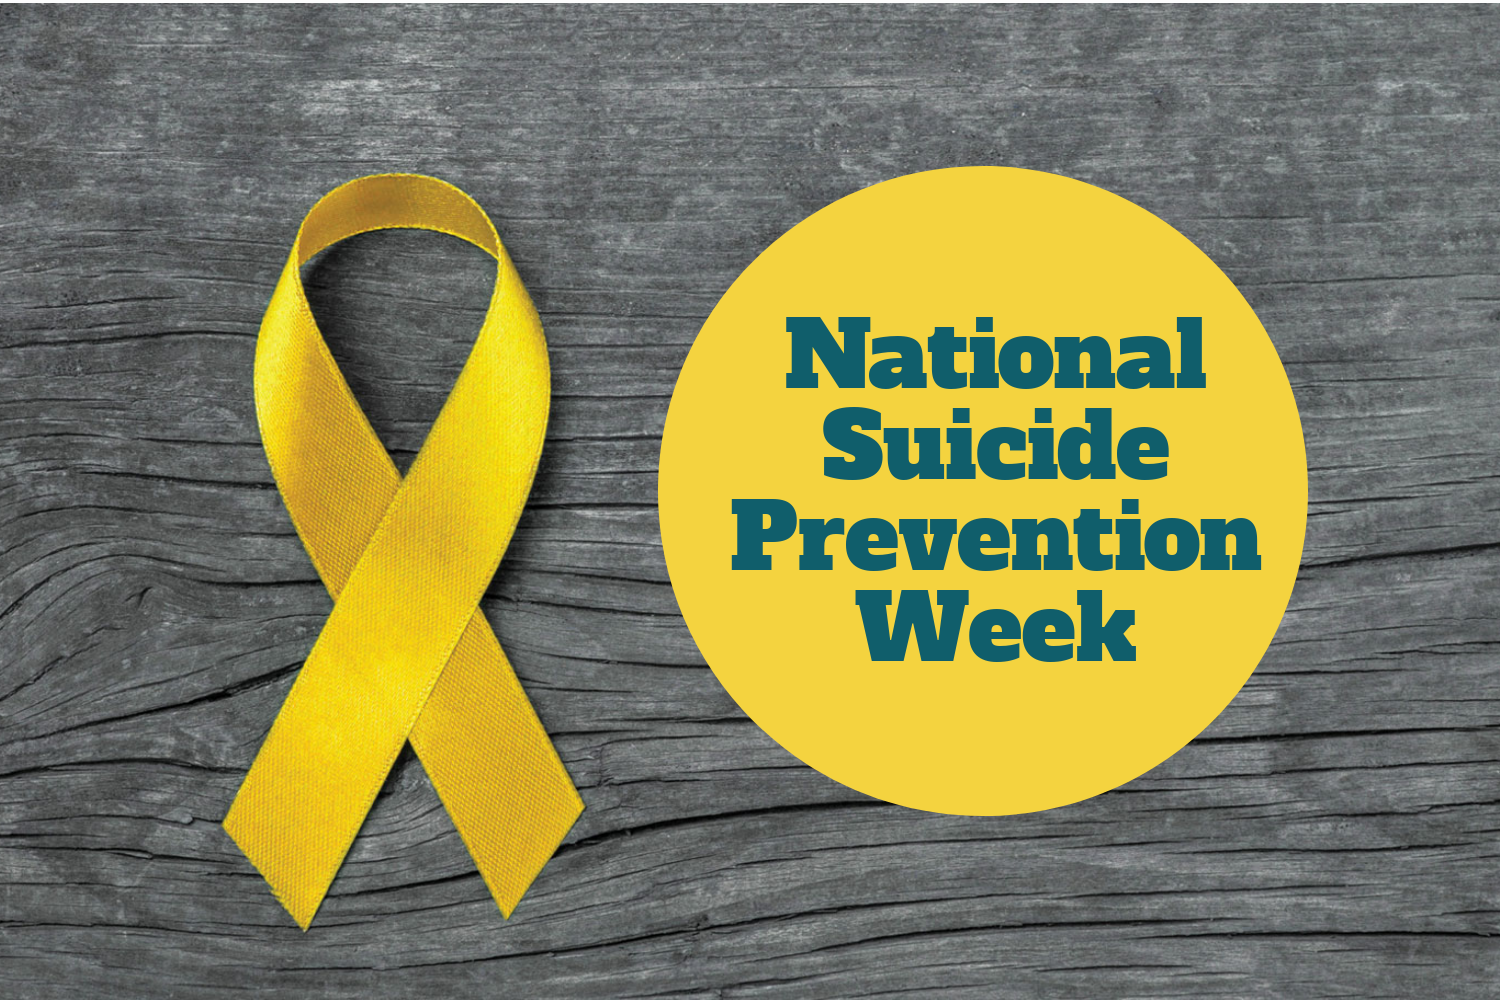 SCCC is giving out yellow ribbons for Nation Suicide Awareness Month.